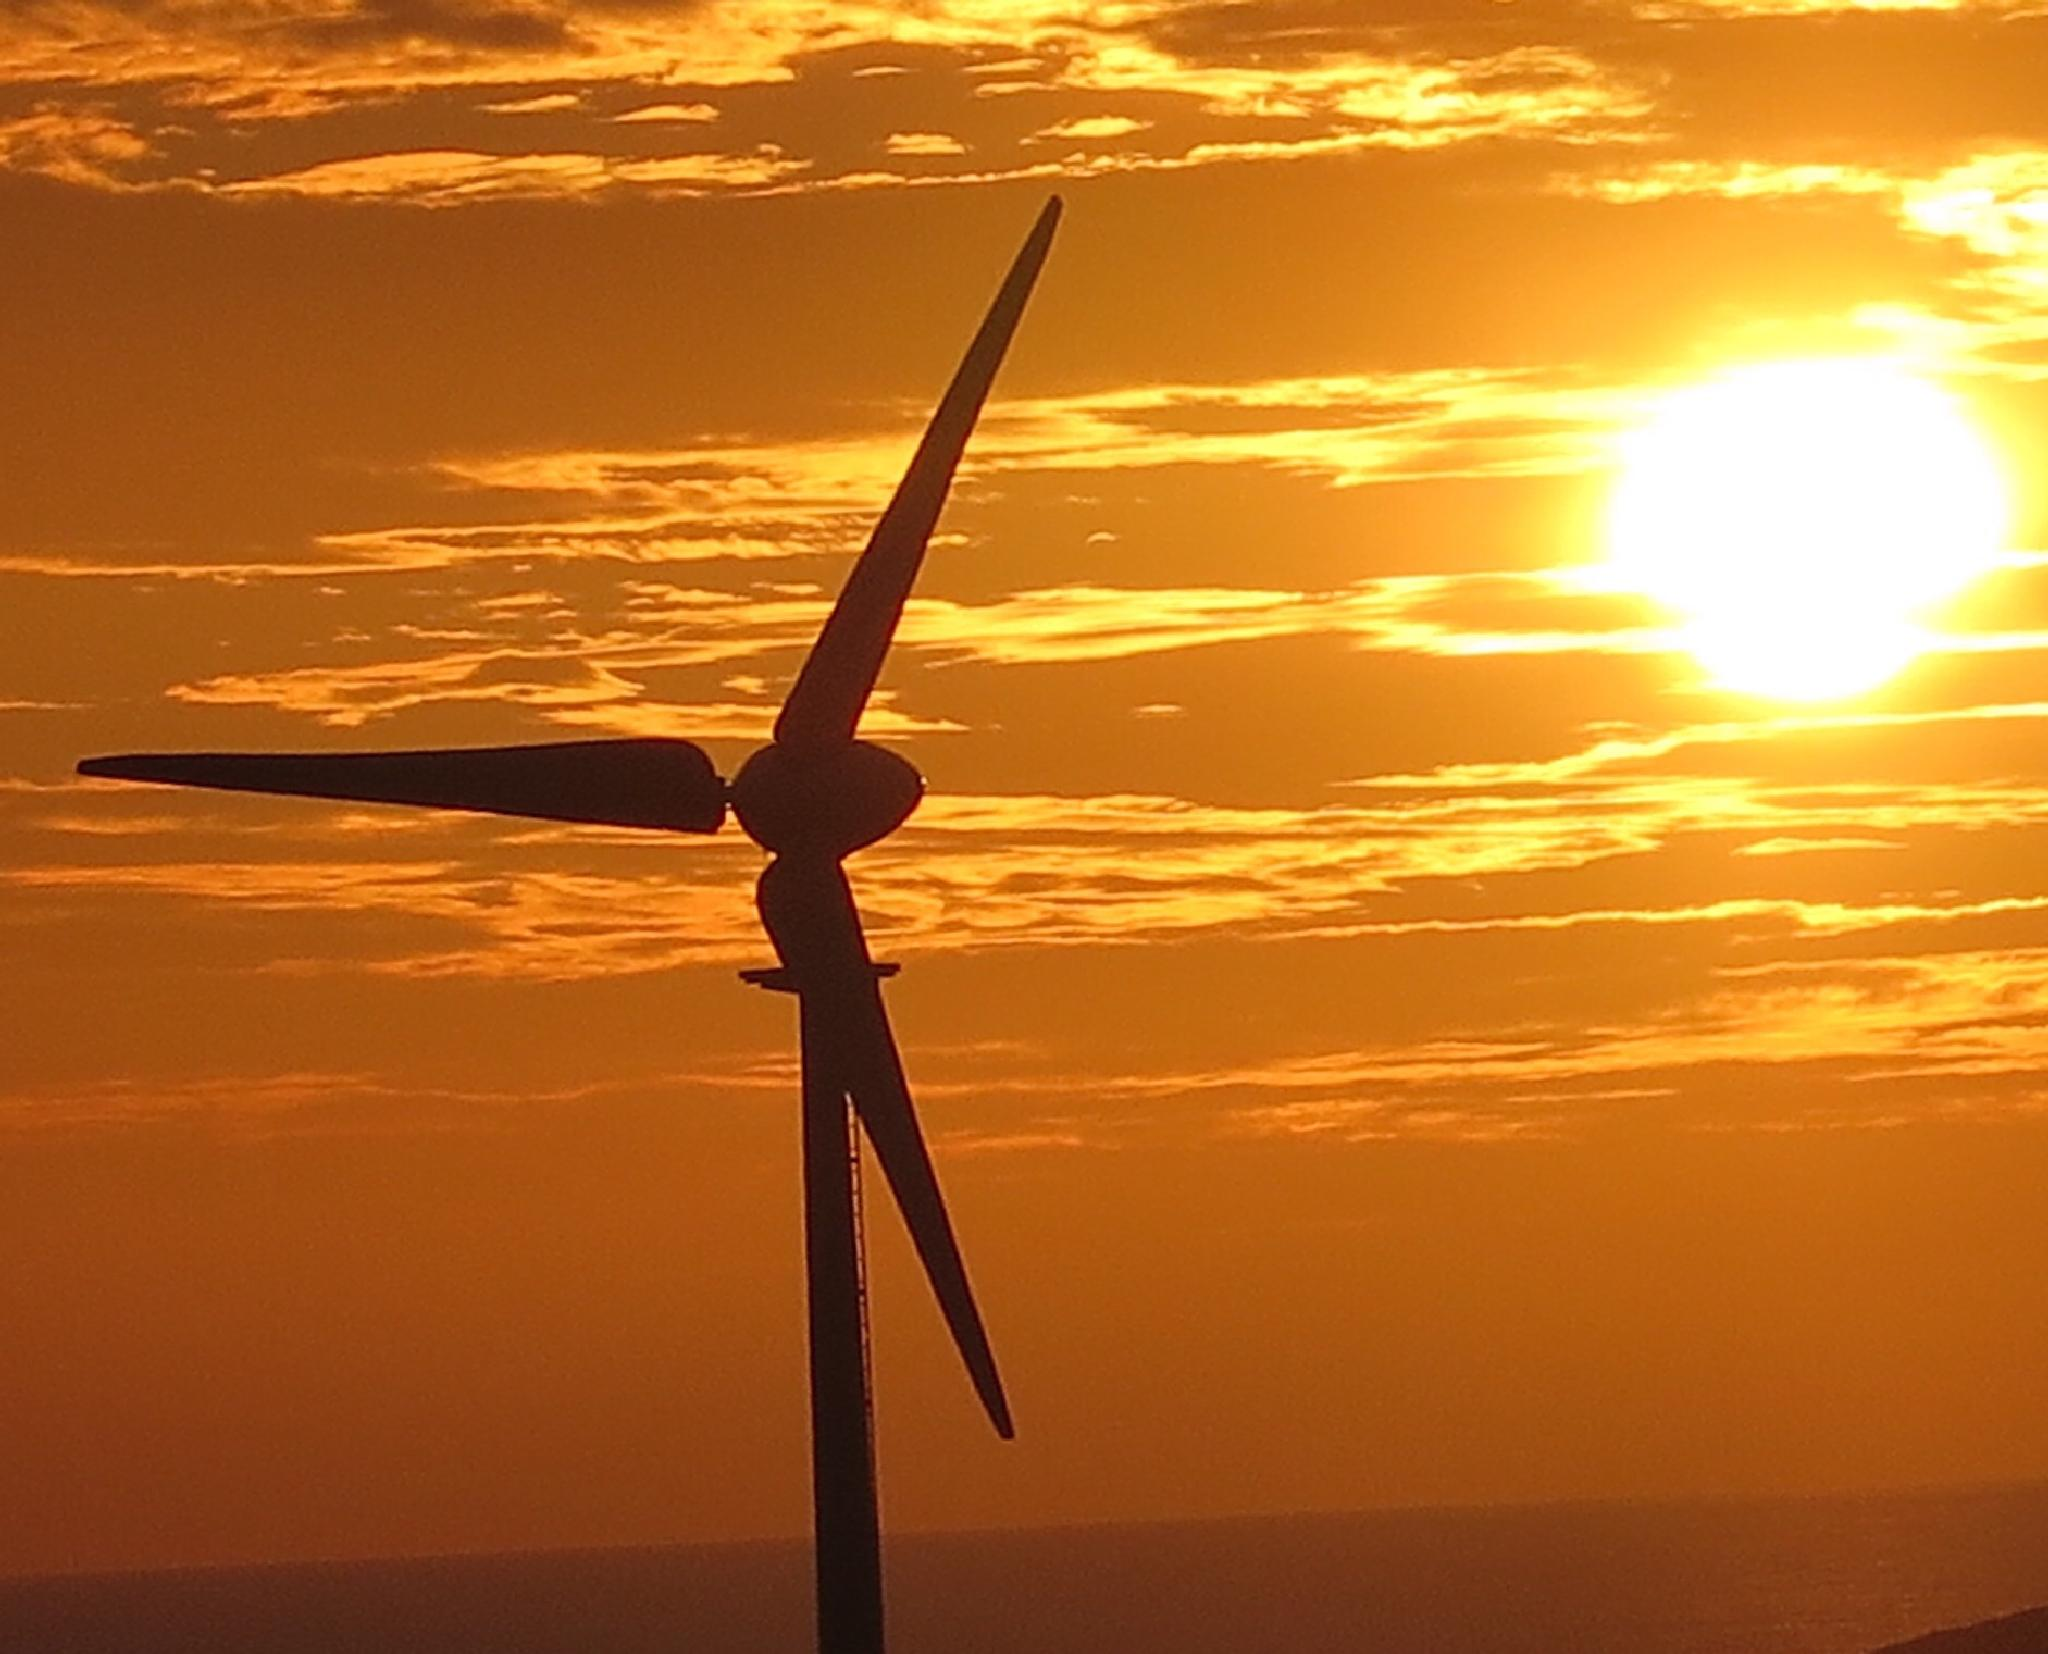 Wind power by Terry Reynolds